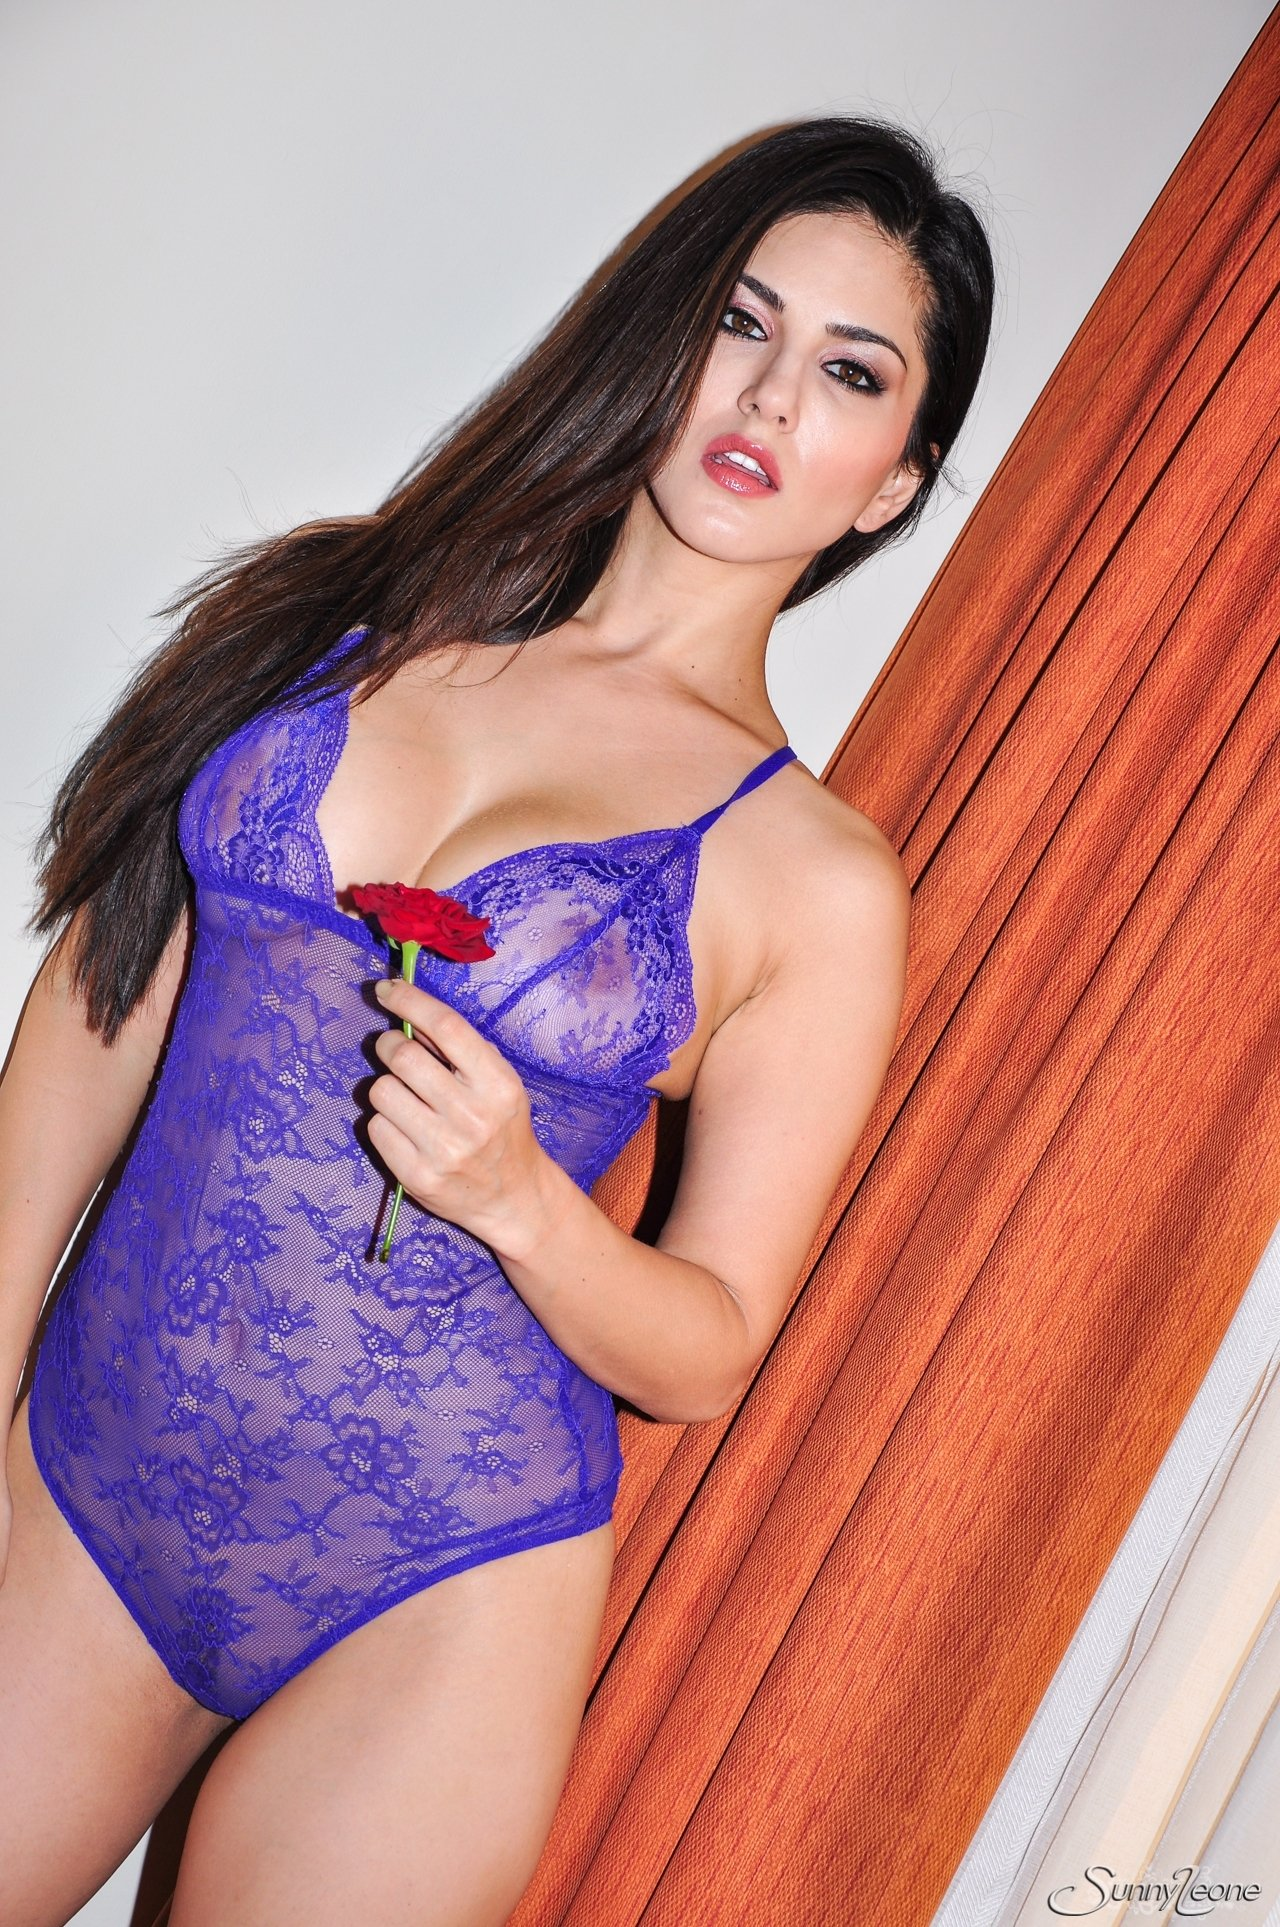 Aranos    reccomended blowjob in lingerie